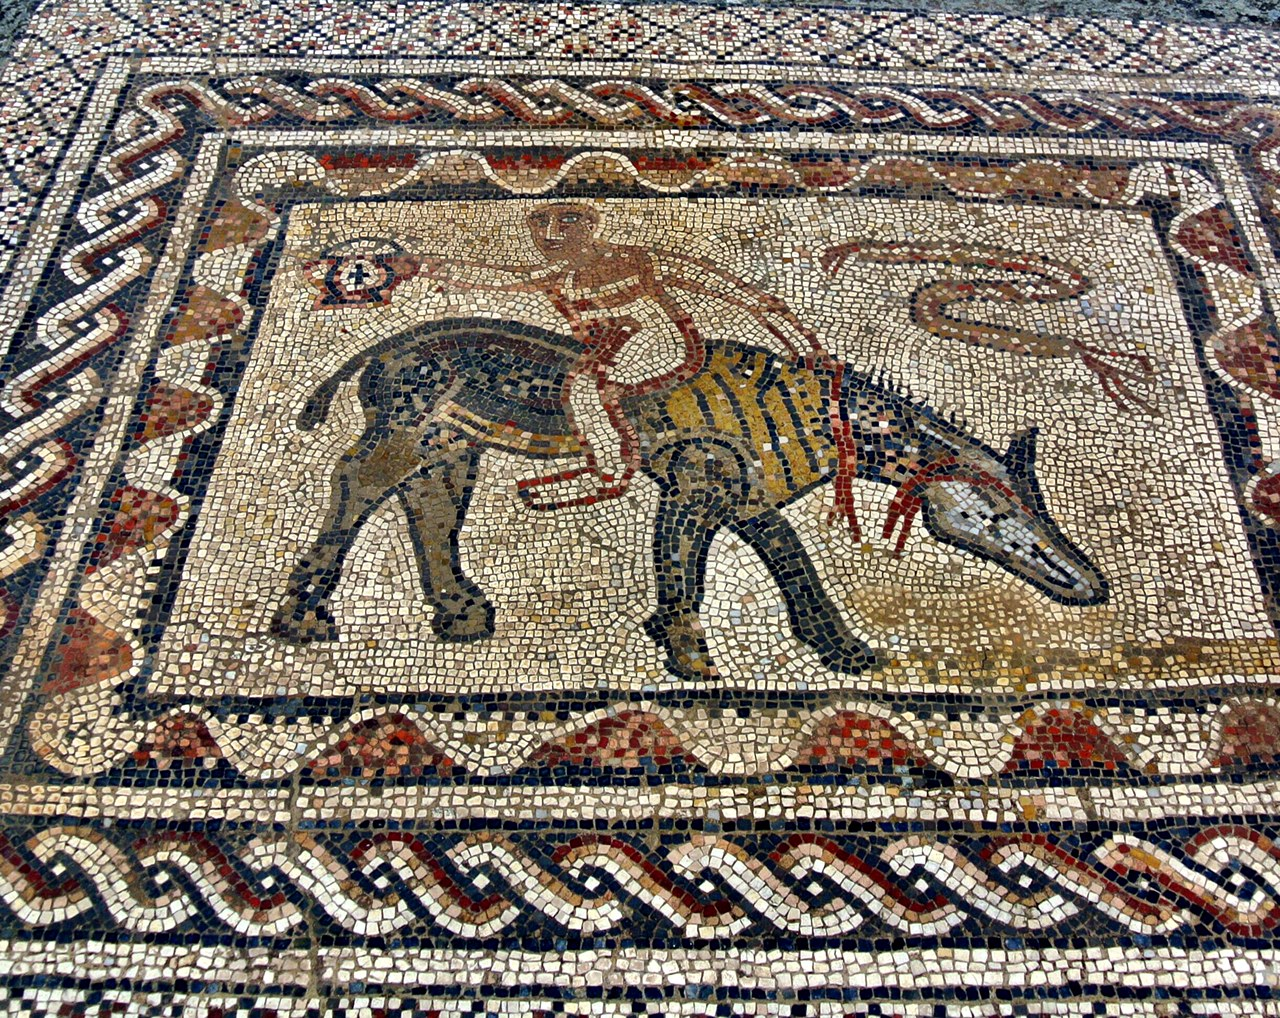 This mosaic of a guy who got on his horse backward is known as the acrobat